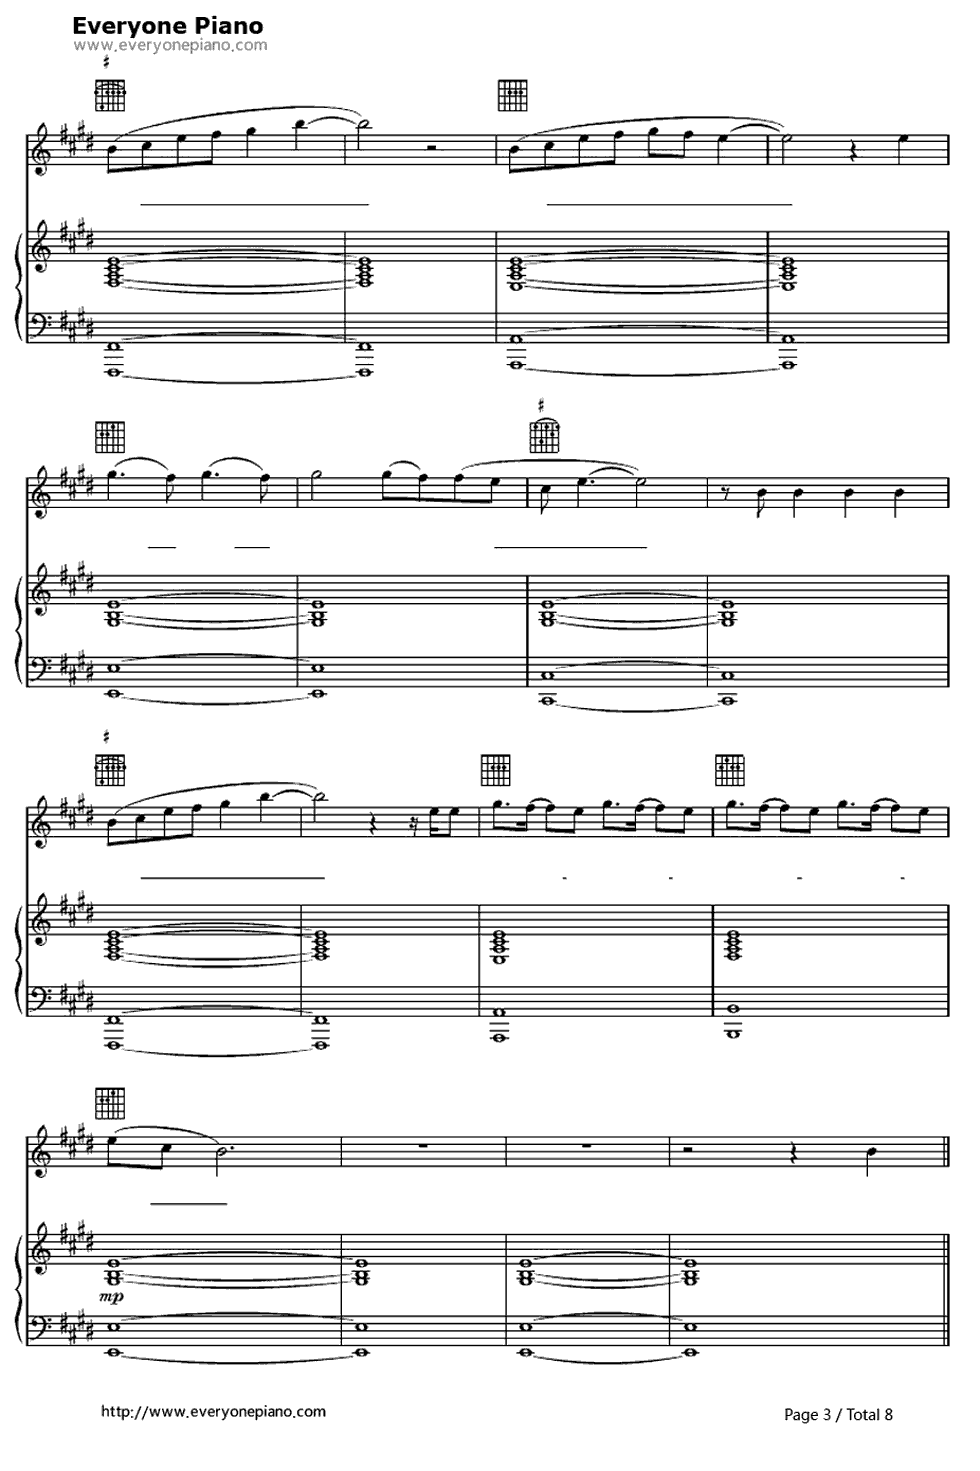 Free lay me down sam smith sheet music preview 3 music free lay me down sam smith sheet music preview 3 hexwebz Choice Image